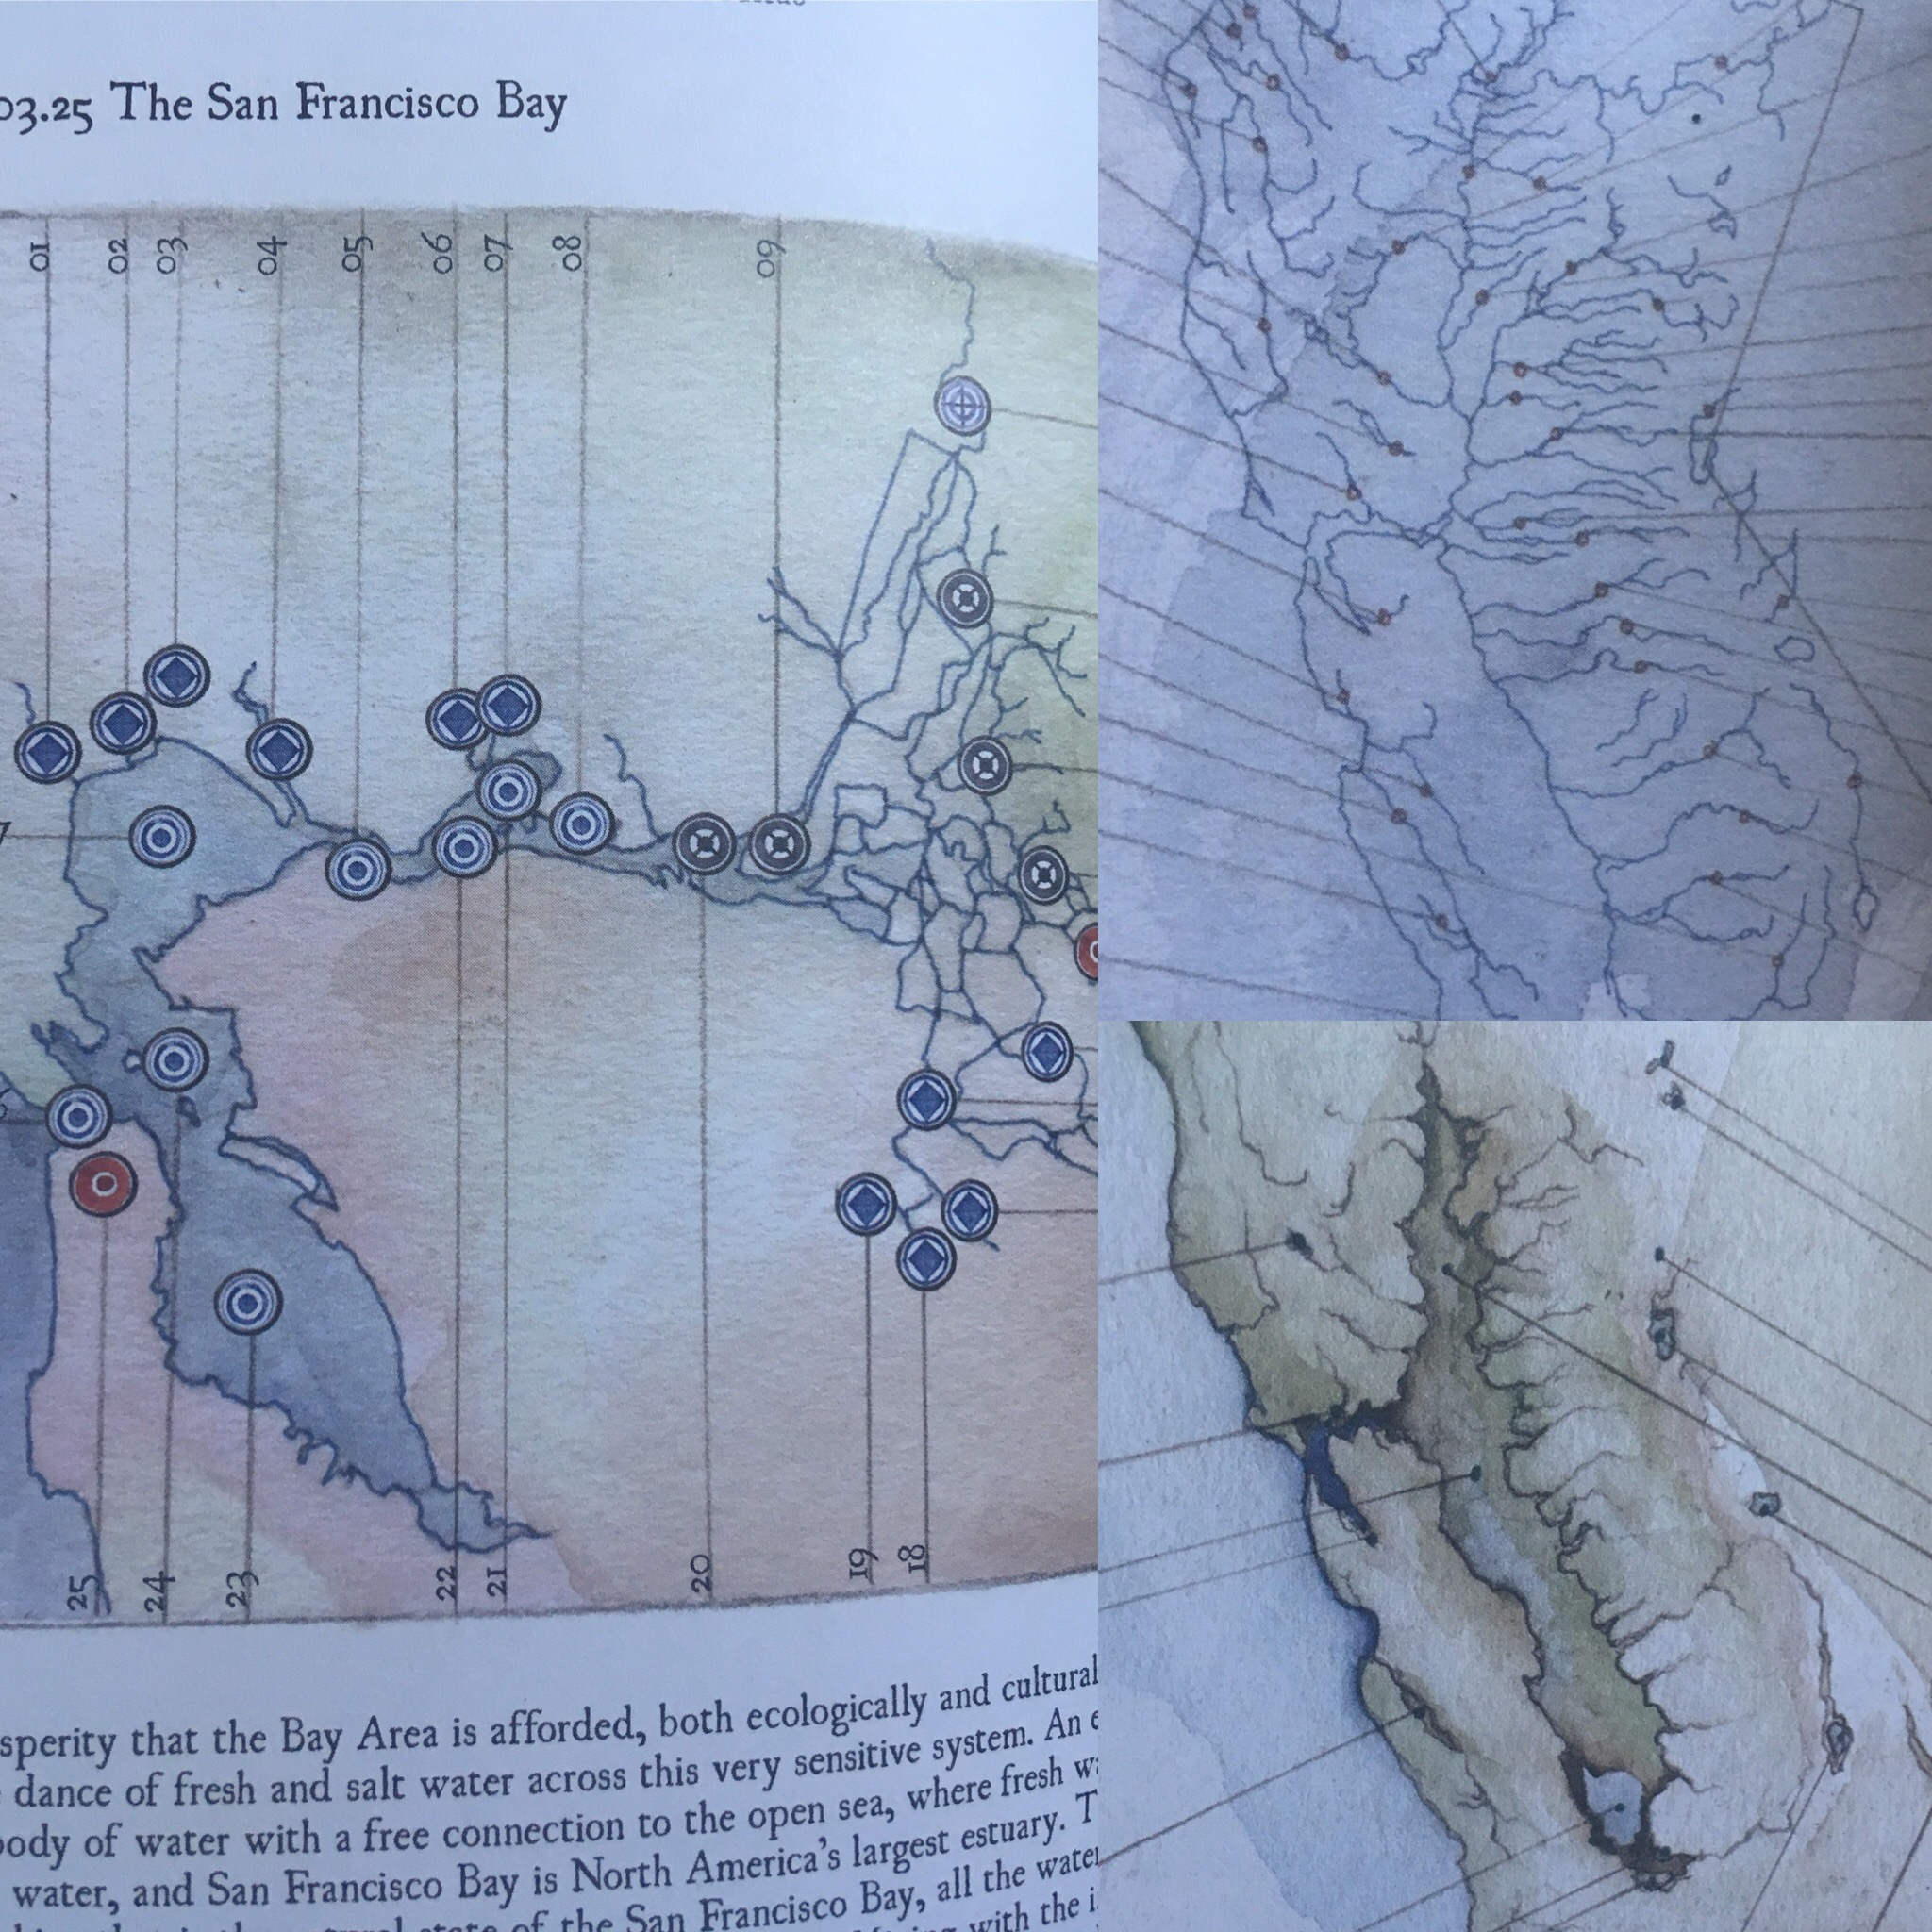 Gorgeous illustrations from The California Field Atlas by Obi Kaufmann